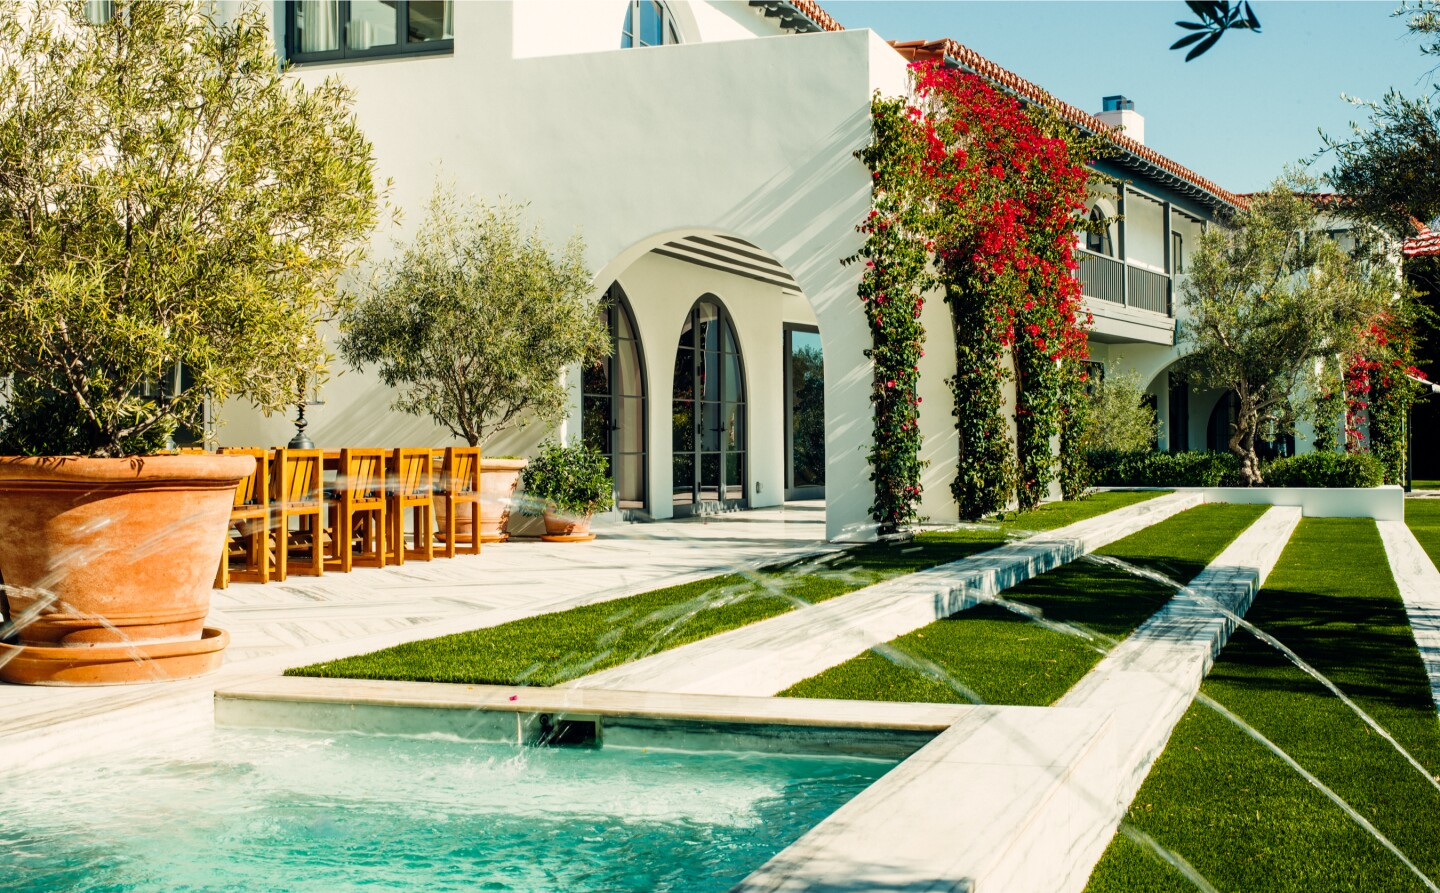 Built in 1929, the Mediterranean mansion holds seven bedrooms and nine bathrooms in 12,000 square feet.